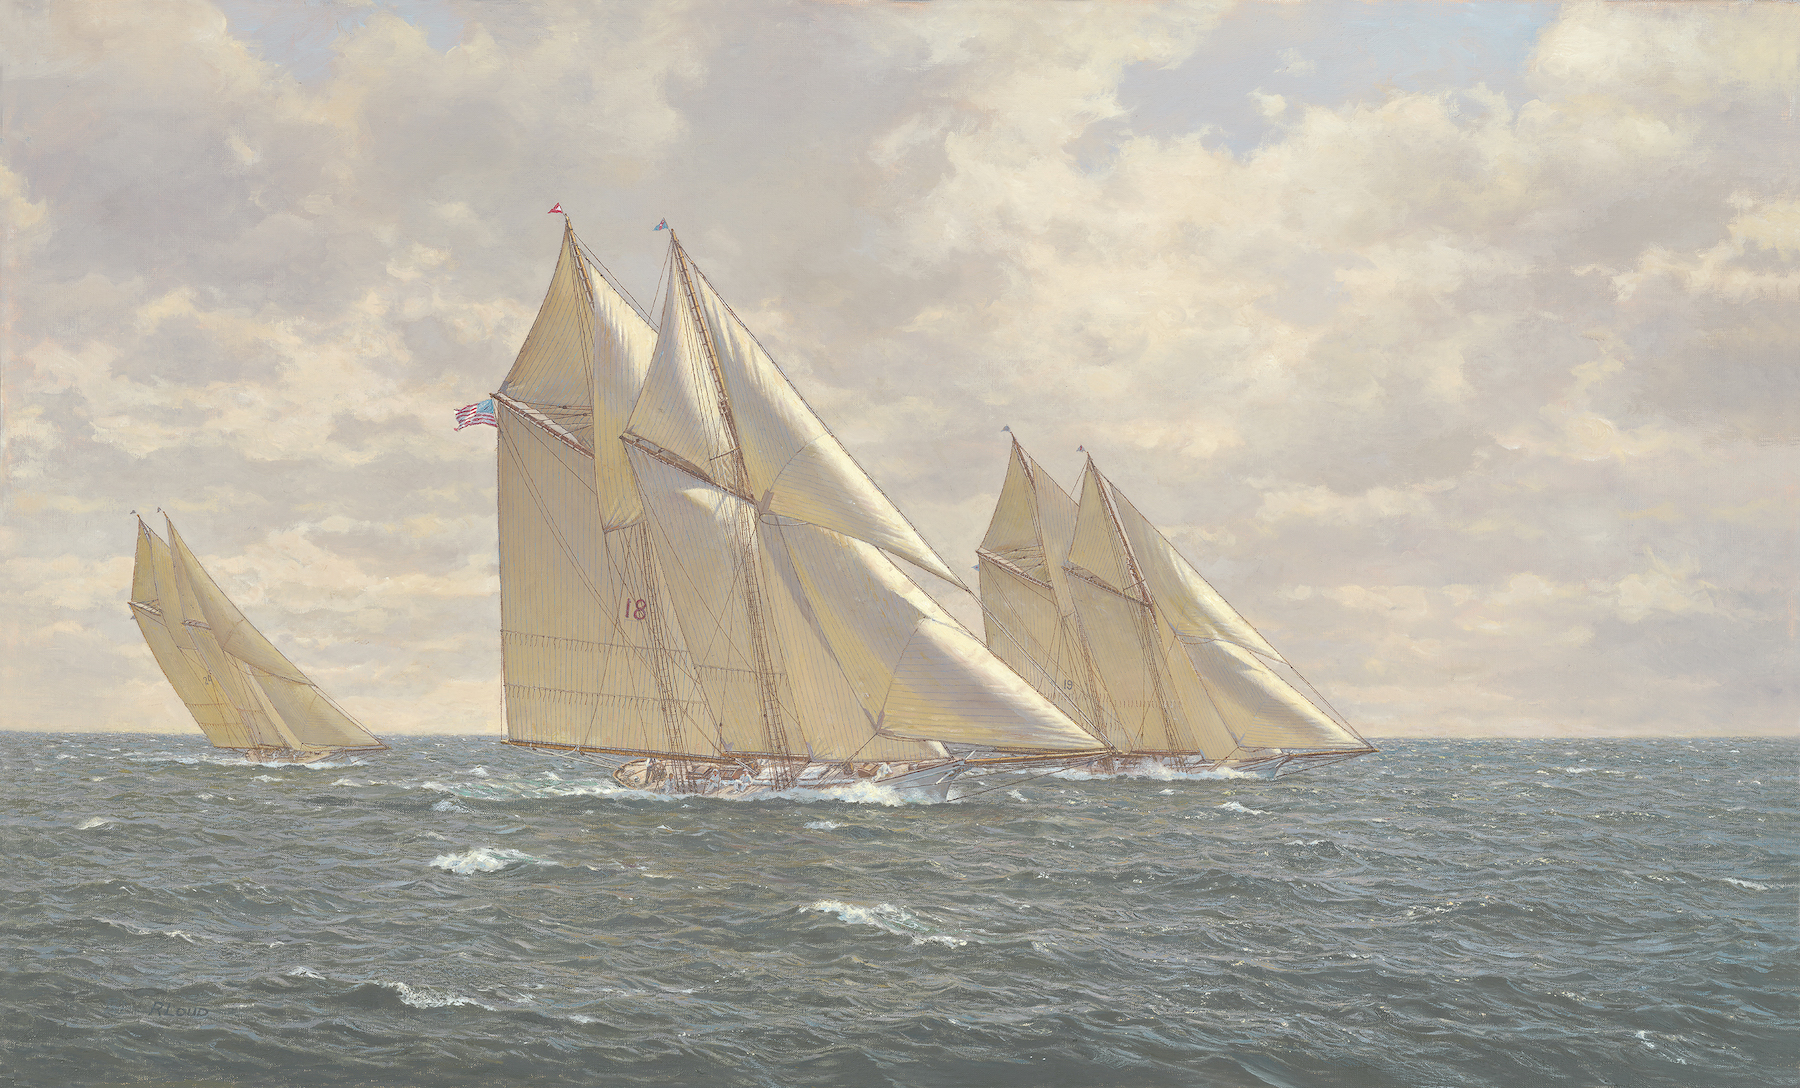 Schooner Merlin 1890, Eastern Yacht Club Puritan Cup, Mayflower ~ Marguerite